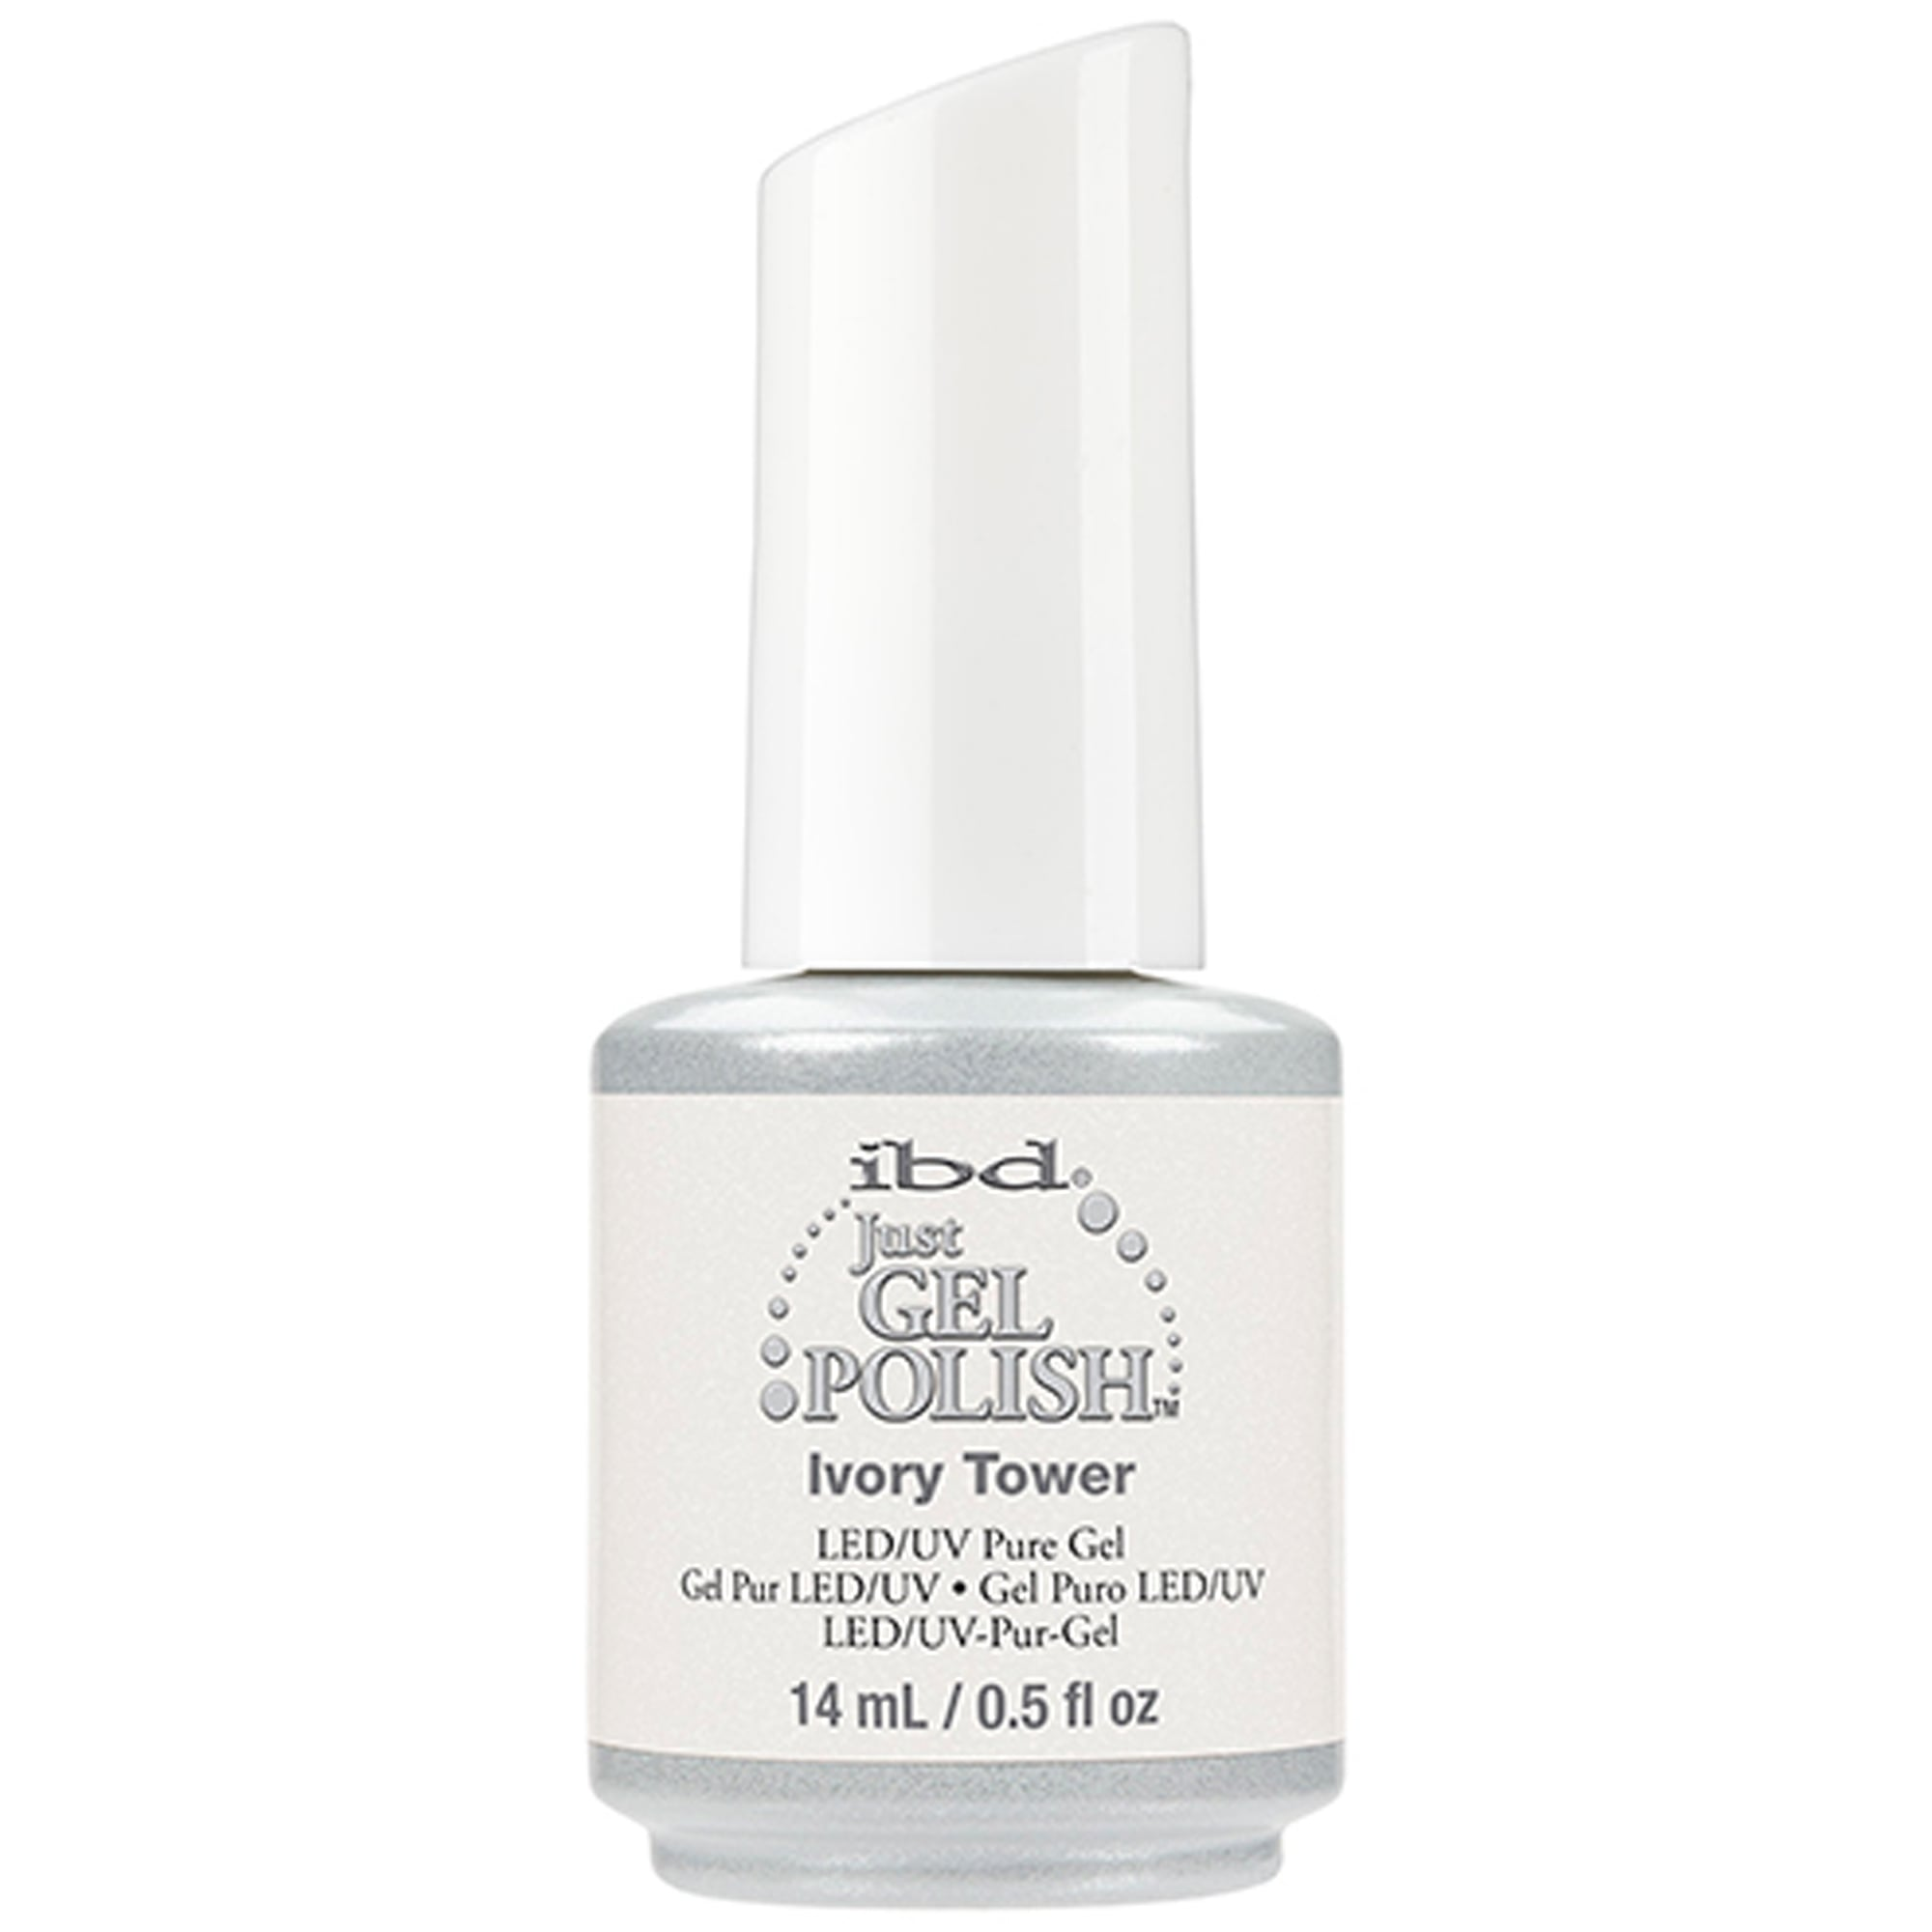 IBD Pure LED & UV Just Gel Polish - Ivory Tower 14ml (132838)